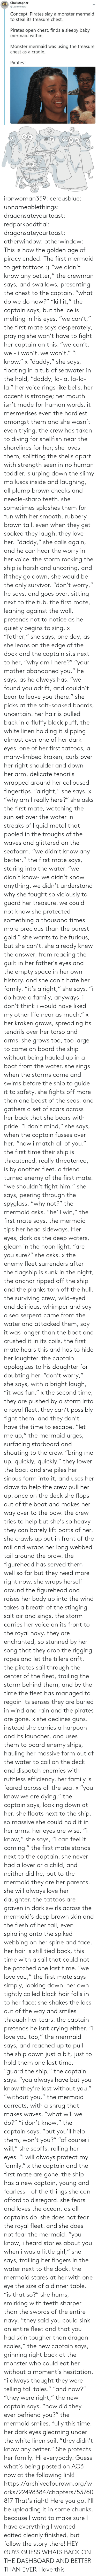 "tips: ironwoman359: cereusblue:  unnameablethings:   dragonsateyourtoast:  redporkpadthai:  dragonsateyourtoast:  otherwindow:  otherwindow: This is how the golden age of piracy ended. The first mermaid to get tattoos :)   ""we didn't know any better,"" the crewman says, and swallows, presenting the chest to the captain. ""what do we do now?"" ""kill it,"" the captain says, but the ice is melting in his eyes. ""we can't,"" the first mate says desperately, praying she won't have to fight her captain on this. ""we can't. we - i won't. we won't."" ""i know."" x ""daddy,"" she says, floating in a tub of seawater in the hold, ""daddy, la-la, la-la-la."" her voice rings like bells. her accent is strange; her mouth isn't made for human words. it mesmerises even the hardiest amongst them and she wasn't even trying. the crew has taken to diving for shellfish near the shorelines for her; she loves them, splitting the shells apart with strength seen in no human toddler, slurping down the slimy molluscs inside and laughing, all plump brown cheeks and needle-sharp teeth. she sometimes splashes them for fun with her smooth, rubbery brown tail. even when they get soaked they laugh. they love her. ""daddy,"" she calls again, and he can hear the worry in her voice. the storm rocking the ship is harsh and uncaring, and if they go down, she would be the only survivor. ""don't worry,"" he says, and goes over, sitting next to the tub. the first mate, leaning against the wall, pretends not to notice as he quietly begins to sing. x ""father,"" she says, one day, as she leans on the edge of the dock and the captain sits next to her, ""why am I here?"" ""your mother abandoned you,"" he says, as he always has. ""we found you adrift, and couldn't bear to leave you there."" she picks at the salt-soaked boards, uncertain. her hair is pulled back in a fluffy black puff, the white linen holding it slipping almost over one of her dark eyes. one of her first tattoos, a many-limbed kraken, curls over her right shoulder and down her arm, delicate tendrils wrapped around her calloused fingertips. ""alright,"" she says. x ""why am I really here?"" she asks the first mate, watching the sun set over the water in streaks of liquid metal that pooled in the troughs of the waves and glittered on the seafoam. ""we didn't know any better,"" the first mate says, staring into the water. ""we didn't know- we didn't know anything. we didn't understand why she fought so viciously to guard her treasure. we could not know she protected something a thousand times more precious than the purest gold."" she wants to be furious, but she can't. she already knew the answer, from reading the guilt in her father's eyes and the empty space in her own history. and she can't hate her family. ""it's alright,"" she says. ""i do have a family, anyways. i don't think i would have liked my other life near as much."" x her kraken grows, spreading its tendrils over her torso and arms. she grows too, too large to come on board the ship without being hauled up in a boat from the water. she sings when the storms come and swims before the ship to guide it to safety. she fights off more than one beast of the seas, and gathers a set of scars across her back that she bears with pride. ""i don't mind,"" she says, when the captain fusses over her, ""now i match all of you."" the first time their ship is threatened, really threatened, is by another fleet. a friend turned enemy of the first mate. ""we shouldn't fight him,"" she says, peering through the spyglass. ""why not?"" the mermaid asks. ""he'll win,"" the first mate says. the mermaid tips her head sideways. Her eyes, dark as the deep waters, gleam in the noon light. ""are you sure?"" she asks. x the enemy fleet surrenders after the flagship is sunk in the night, the anchor ripped off the ship and the planks torn off the hull. the surviving crew, wild-eyed and delirious, whimper and say a sea serpent came from the water and attacked them, say it was longer than the boat and crushed it in its coils. the first mate hears this and has to hide her laughter. the captain apologizes to his daughter for doubting her. ""don't worry,"" she says, with a bright laugh, ""it was fun."" x the second time, they are pushed by a storm into a royal fleet. they can't possibly fight them, and they don't have the time to escape. ""let me up,"" the mermaid urges, surfacing starboard and shouting to the crew. ""bring me up, quickly, quickly."" they lower the boat and she piles her sinous form into it, and uses her claws to help the crew pull her up. once on the deck she flops out of the boat and makes her way over to the bow. the crew tries to help but she's so heavy they can barely lift parts of her. she crawls up out in front of the rail and wraps her long webbed tail around the prow. the figurehead has served them well so far but they need more right now. she wraps herself around the figurehead and raises her body up into the wind takes a breath of the stinging salt air and sings. the storm carries her voice on its front to the royal navy. they are enchanted, so stunned by her song that they drop the rigging ropes and let the tillers drift. the pirates sail through the center of the fleet, trailing the storm behind them, and by the time the fleet has managed to regain its senses they are buried in wind and rain and the pirates are gone. x she declines guns. instead she carries a harpoon and its launcher, and uses them to board enemy ships, hauling her massive form out of the water to coil on the deck and dispatch enemies with ruthless efficiency. her family is feared across all the sea. x ""you know we are dying,"" the captain says, looking down at her. she floats next to the ship, so massive she could hold it in her arms. her eyes are wise. ""i know,"" she says, ""i can feel it coming."" the first mate stands next to the captain. she never had a lover or a child, and neither did he, but to the mermaid they are her parents. she will always love her daughter. the tattoos are graven in dark swirls across the mermaid's deep brown skin and the flesh of her tail, even spiraling onto the spiked webbing on her spine and face. her hair is still tied back, this time with a sail that could not be patched one last time.  ""we love you,"" the first mate says simply, looking down. her own tightly coiled black hair falls in to her face; she shakes the locs out of the way and smiles through her tears. the captain pretends he isnt crying either. ""i love you too,"" the mermaid says, and reached up to pull the ship down just a bit, just to hold them one last time. ""guard the ship,"" the captain says. ""you always have but you know they're lost without you."" ""without you,"" the mermaid corrects, with a shrug that makes waves. ""what will we do?"" ""i don't know,"" the captain says. ""but you'll help them, won't you?"" ""of course i will,"" she scoffs, rolling her eyes. ""i will always protect my family."" x the captain and the first mate are gone. the ship has a new captain, young and fearless - of the things she can afford to disregard. she fears and loves the ocean, as all captains do. she does not fear the royal fleet. and she does not fear the mermaid. ""you know, i heard stories about you when i was a little girl,"" she says, trailing her fingers in the water next to the dock. the mermaid stares at her with one eye the size of a dinner table. ""is that so?"" she hums, smirking with teeth sharper than the swords of the entire navy. ""they said you could sink an entire fleet and that you had skin tougher than dragon scales,"" the new captain says, grinning right back at the monster who could eat her without a moment's hesitation. ""i always thought they were telling tall tales."" ""and now?"" ""they were right,"" the new captain says. ""how did they ever befriend you?"" the mermaid smiles, fully this time, her dark eyes gleaming under the white linen sail. ""they didn't know any better.""  She protects her family.  Hi everybody! Guess what's being posted on AO3 now at the following link! https://archiveofourown.org/works/22498384/chapters/53760817 That's right! Here you go. I'll be uploading it in some chunks, because I want to make sure I have everything I wanted edited cleanly finished, but follow the story there!     HEY GUYS GUESS WHATS BACK ON THE DASHBOARD AND BETTER THAN EVER    I love this"